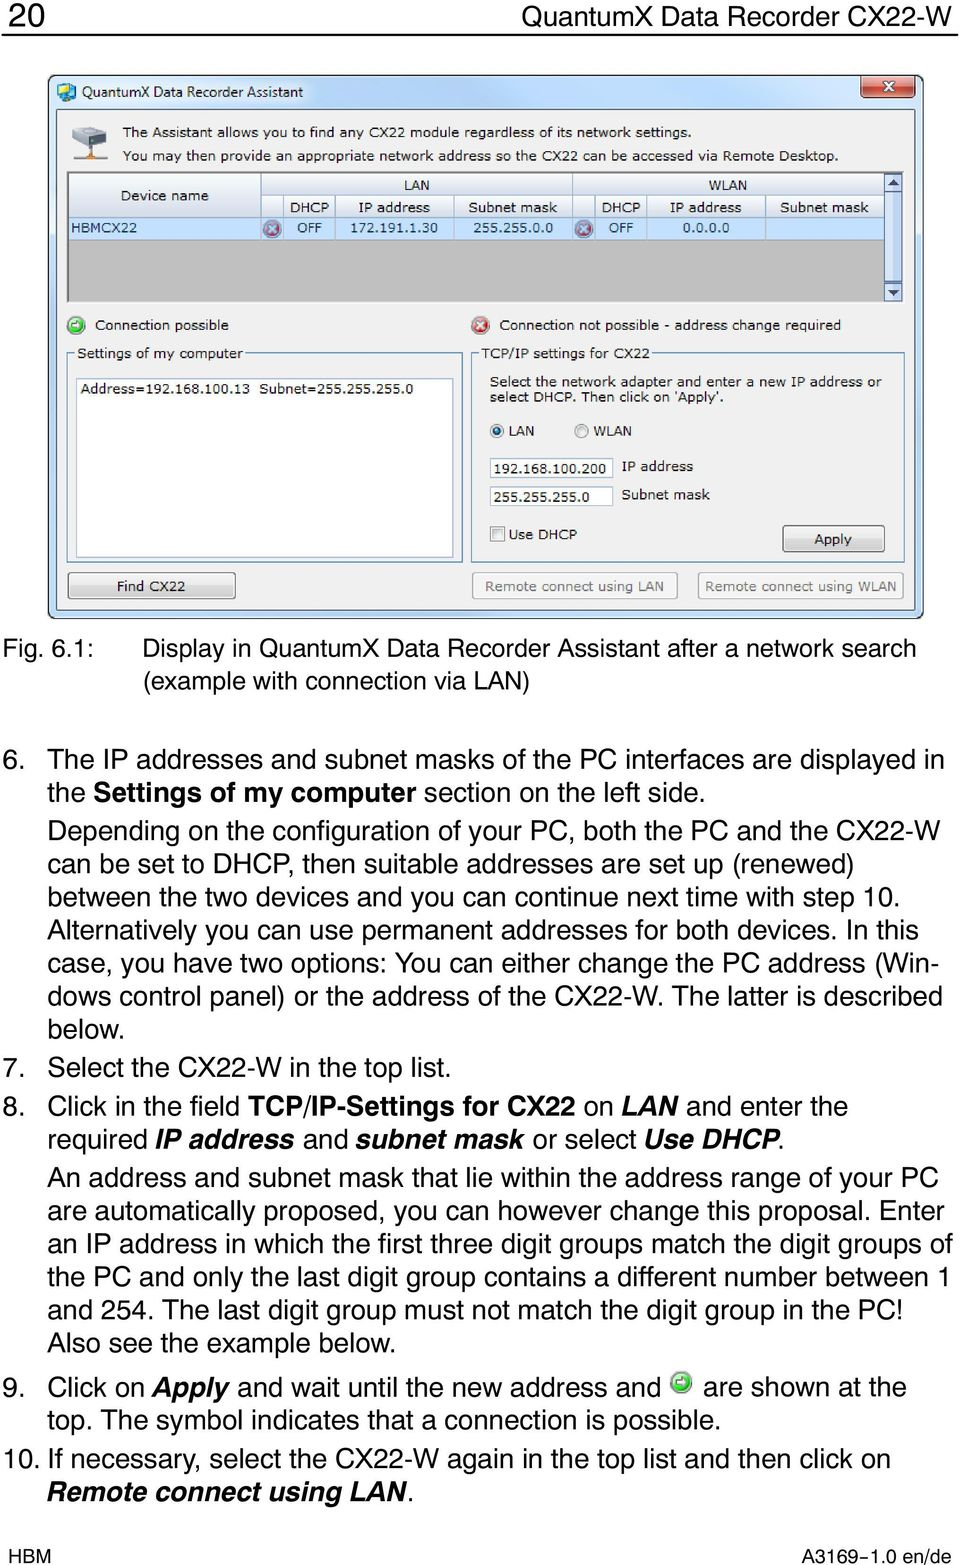 Depending on the configuration of your PC, both the PC and the CX22 W can be set to DHCP, then suitable addresses are set up (renewed) between the two devices and you can continue next time with step